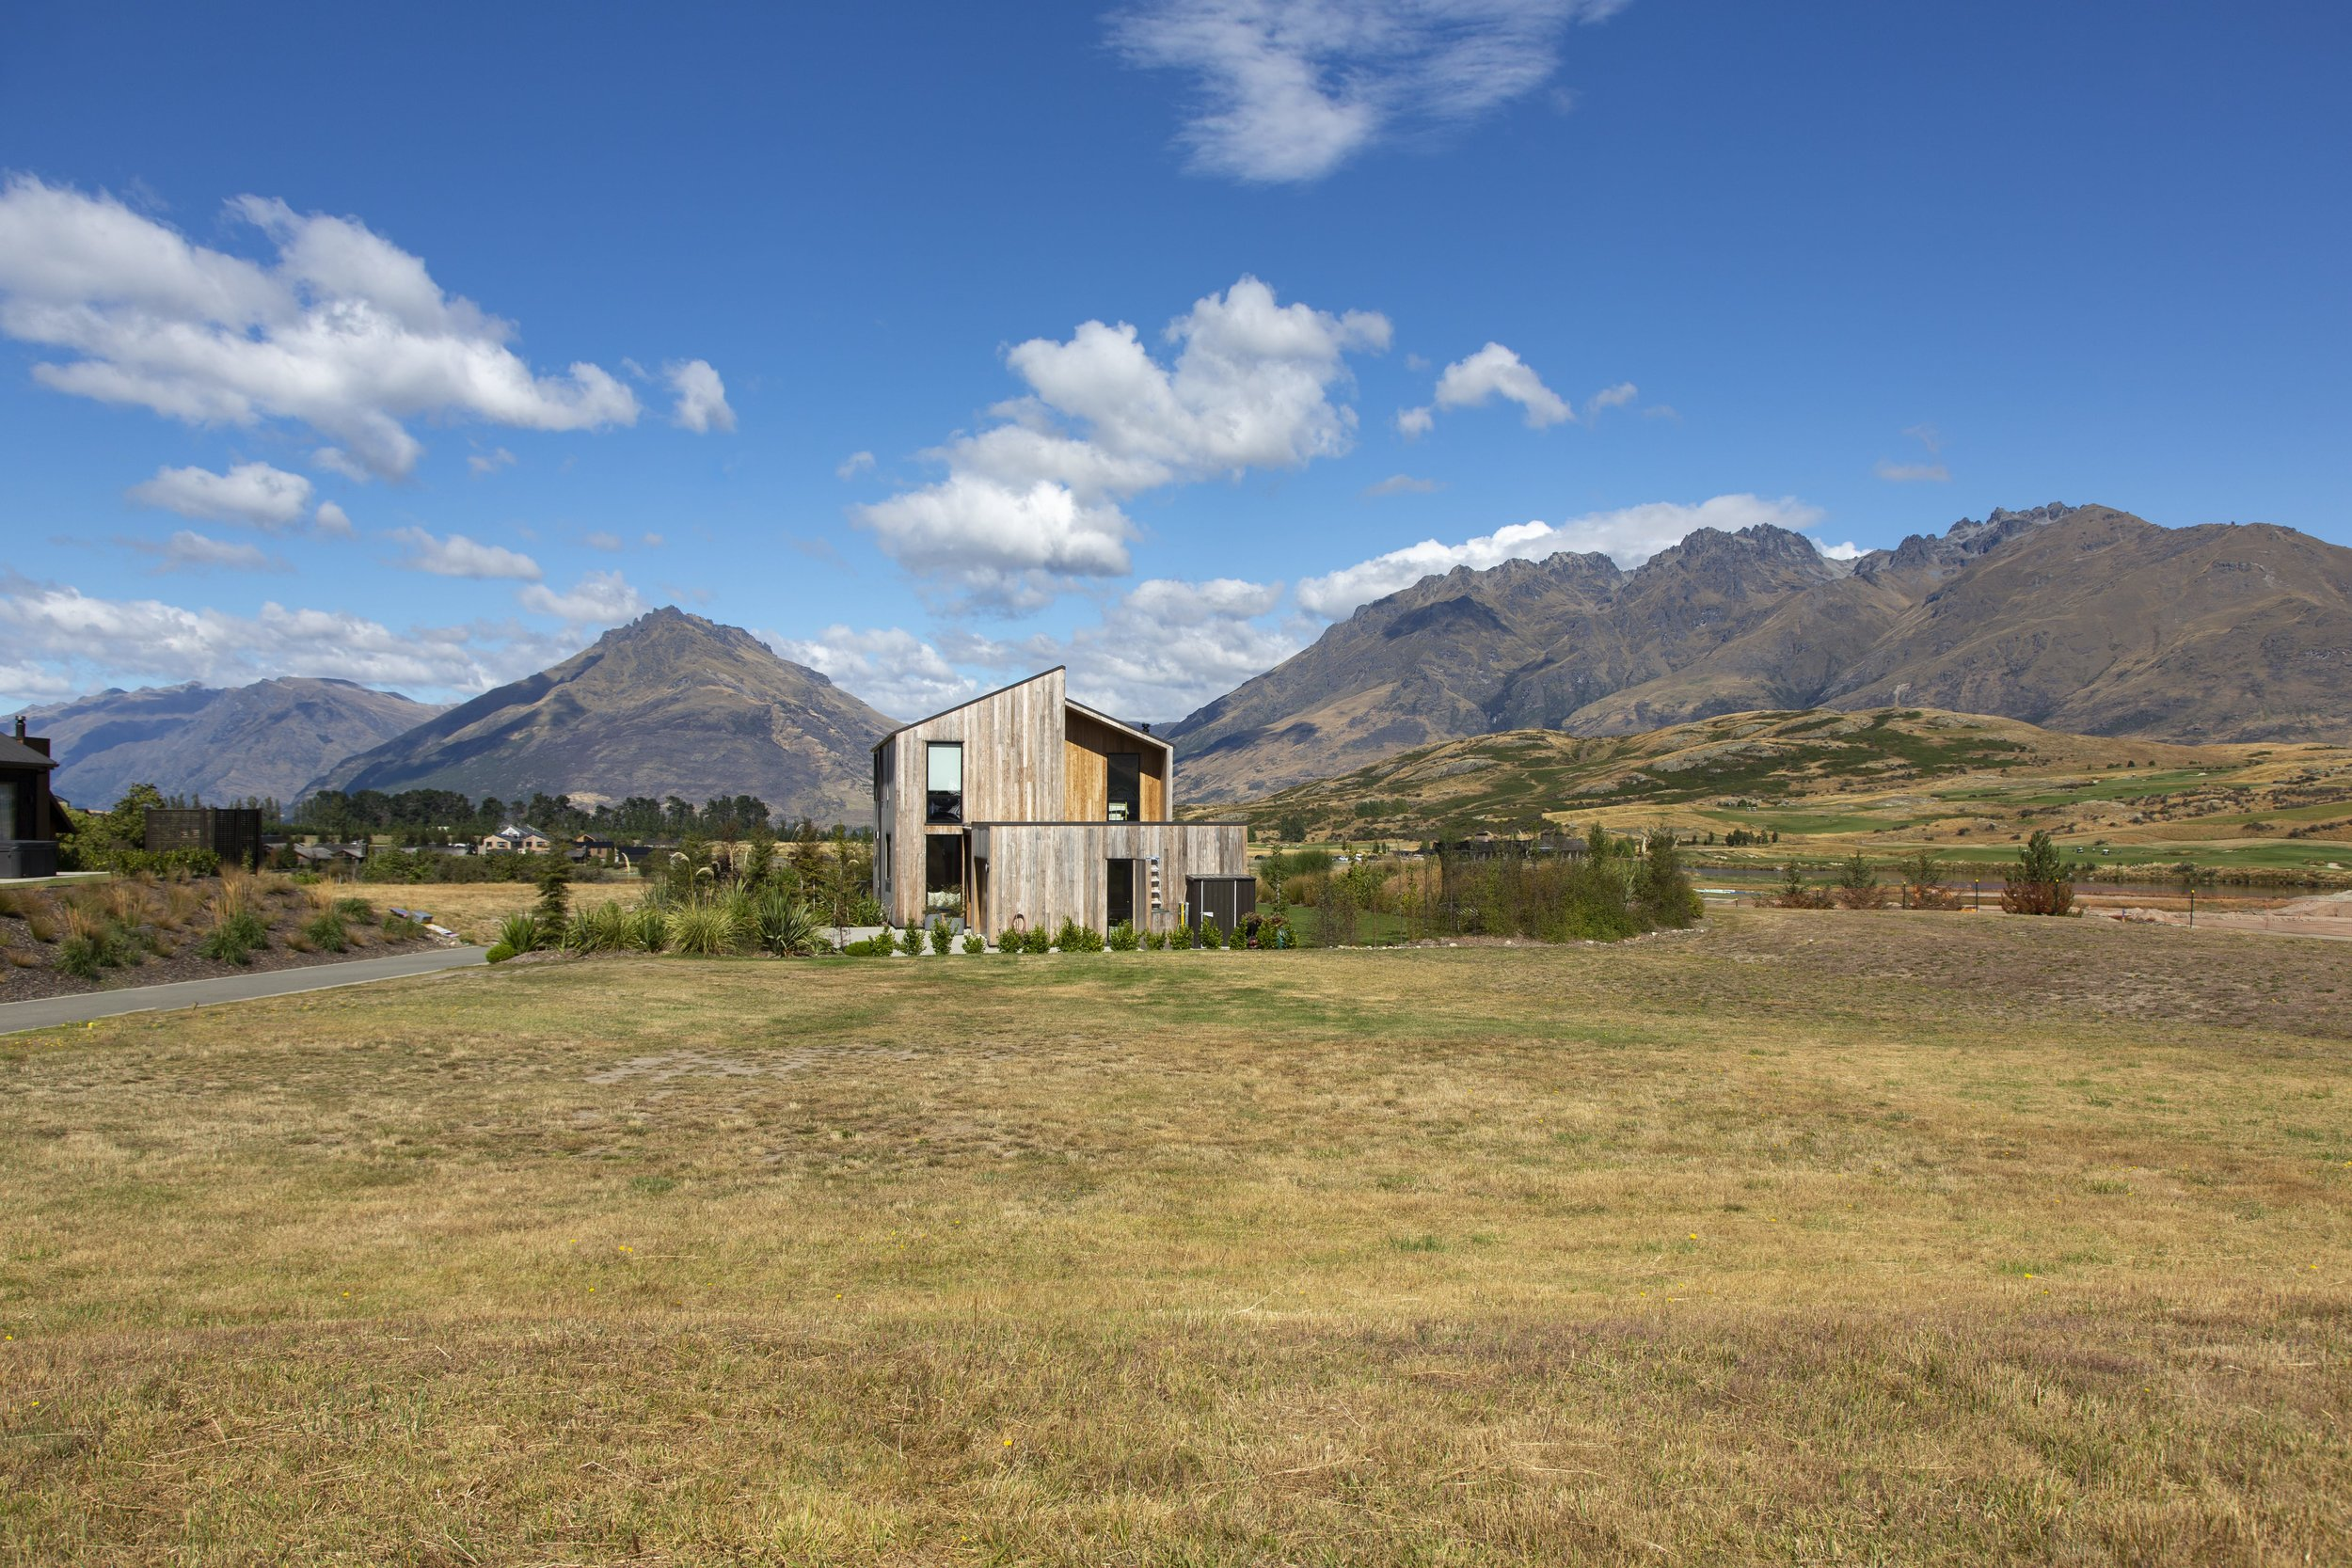 7_Torridon_Court_Jacks_Point_012-min.jpg